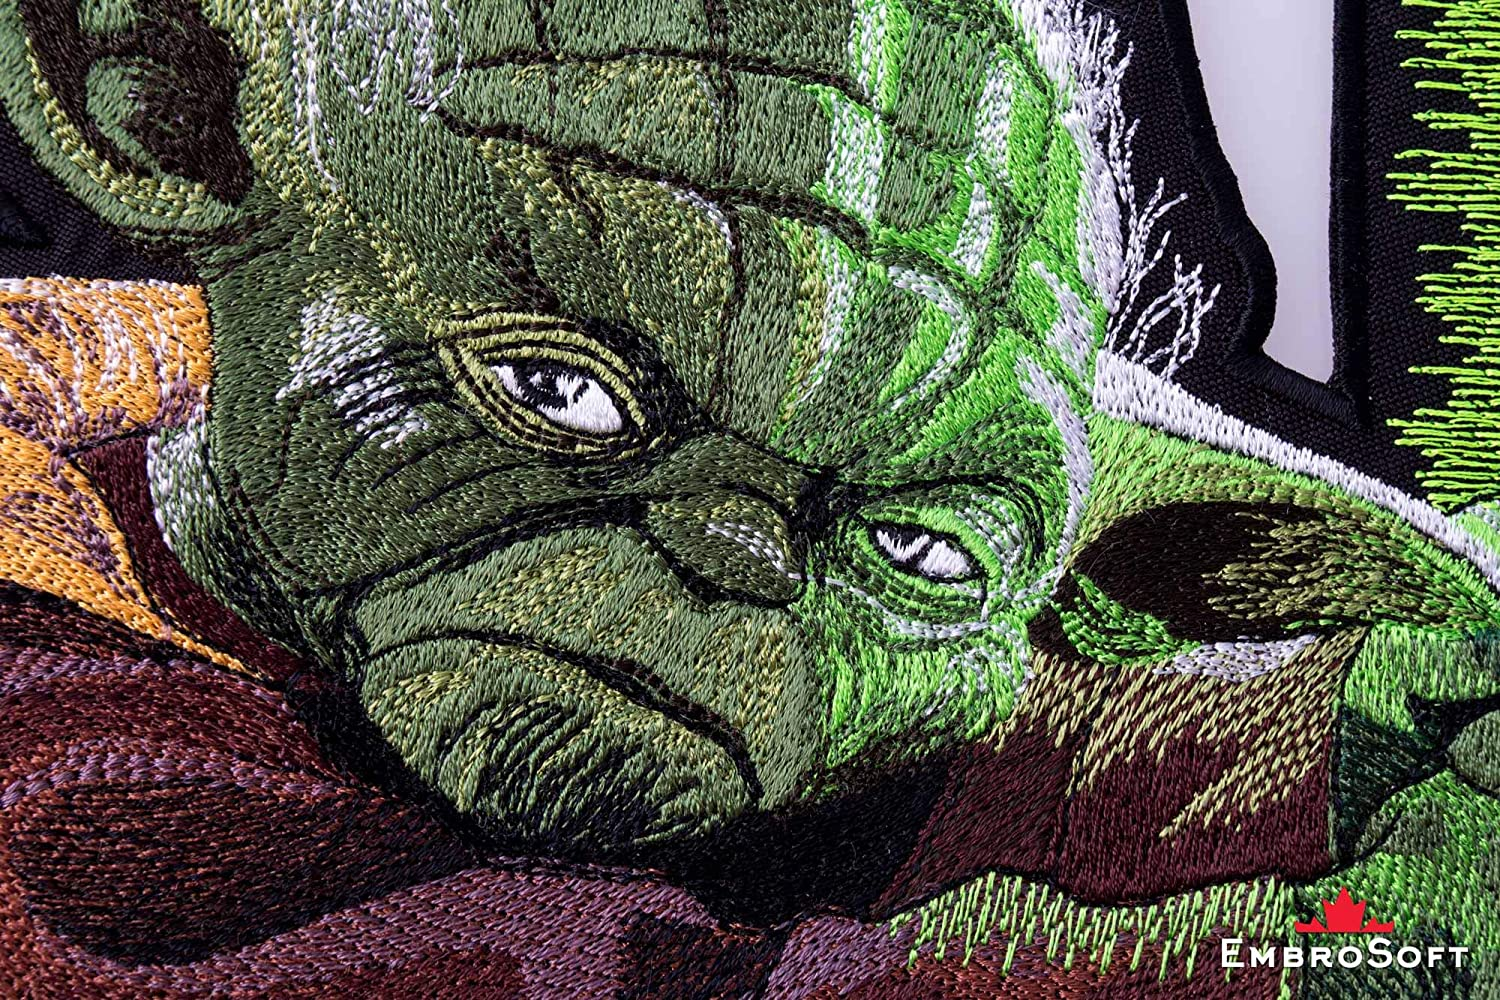 Star Wars Master Yoda Embroidered Iron On Patch  Sew On Applique